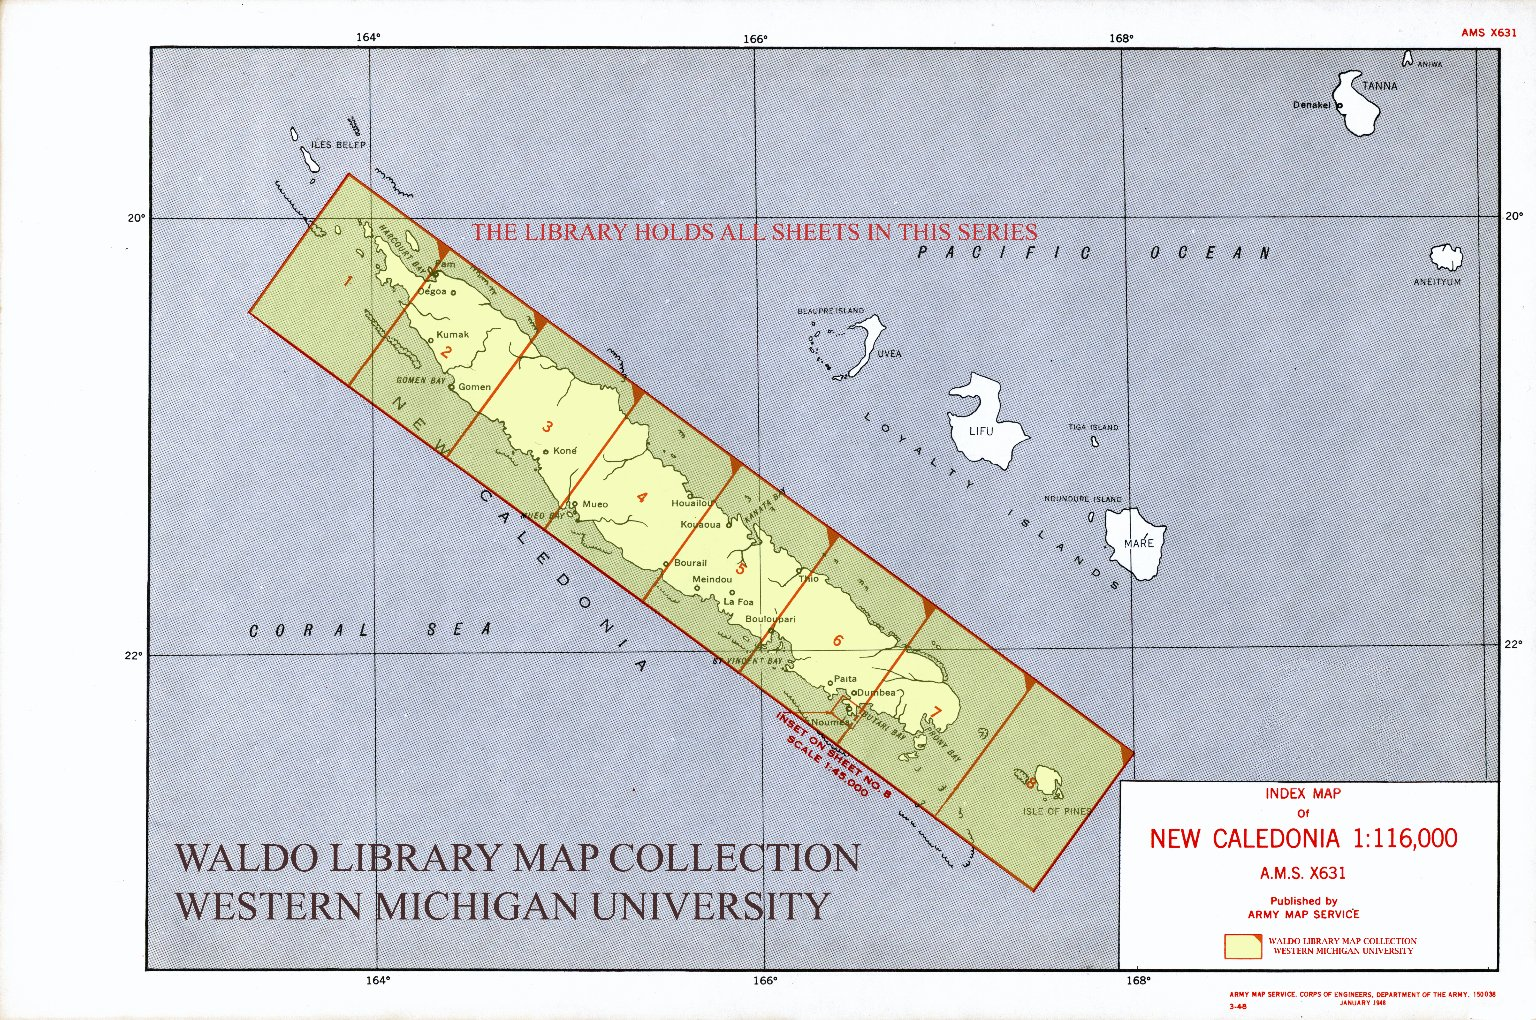 Index map of New Caledonia 1:116,000